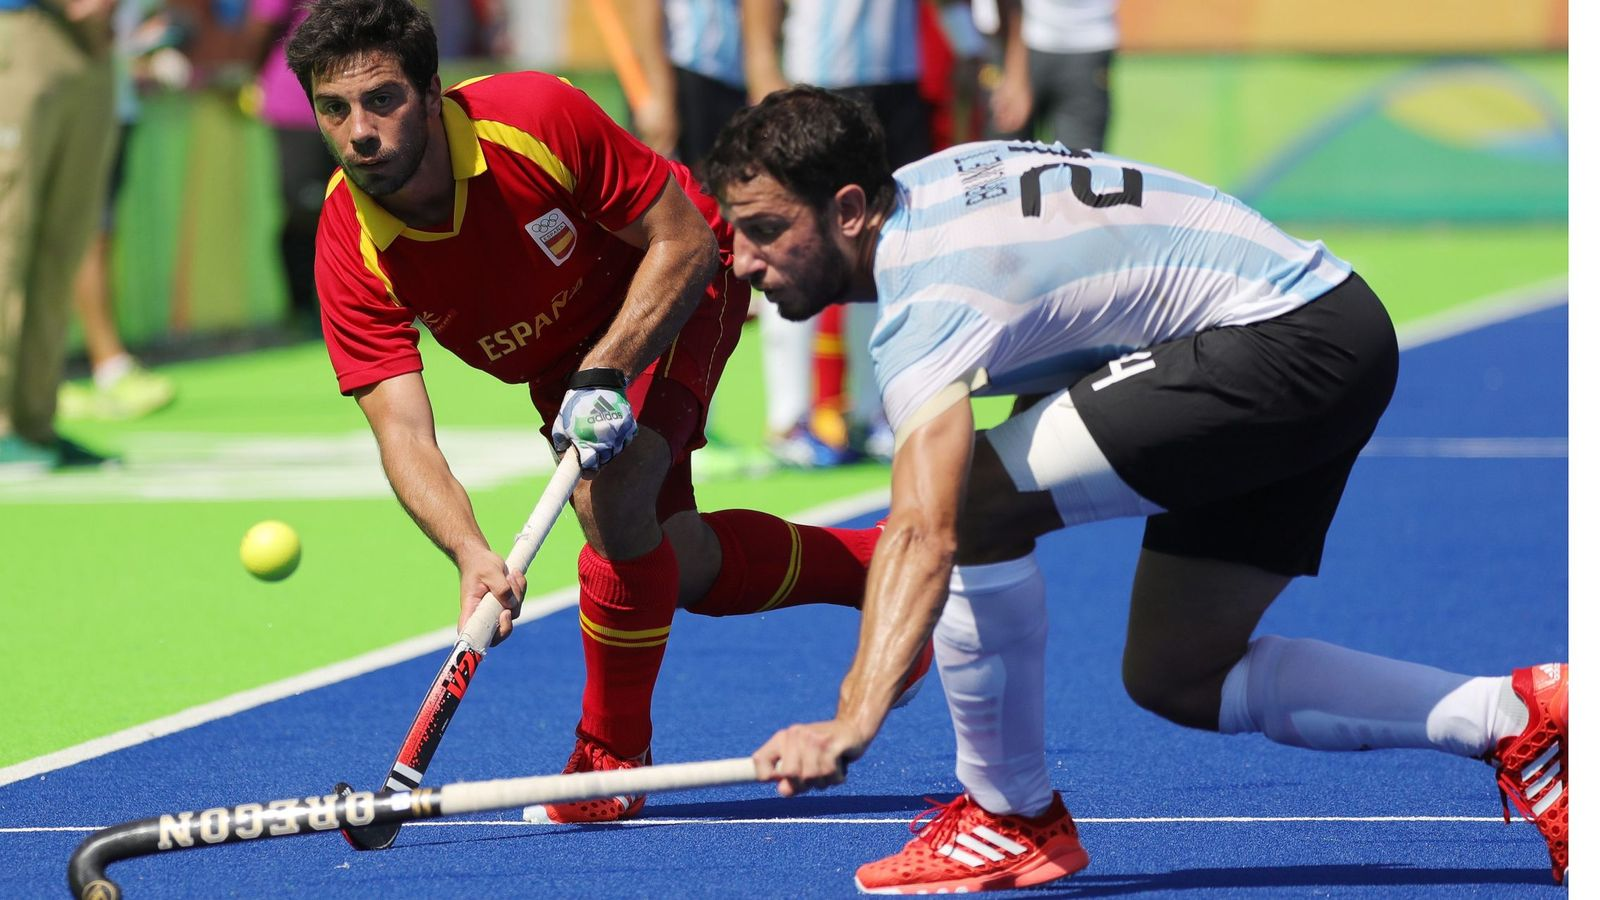 Foto: Olympic games 2016 field hockey